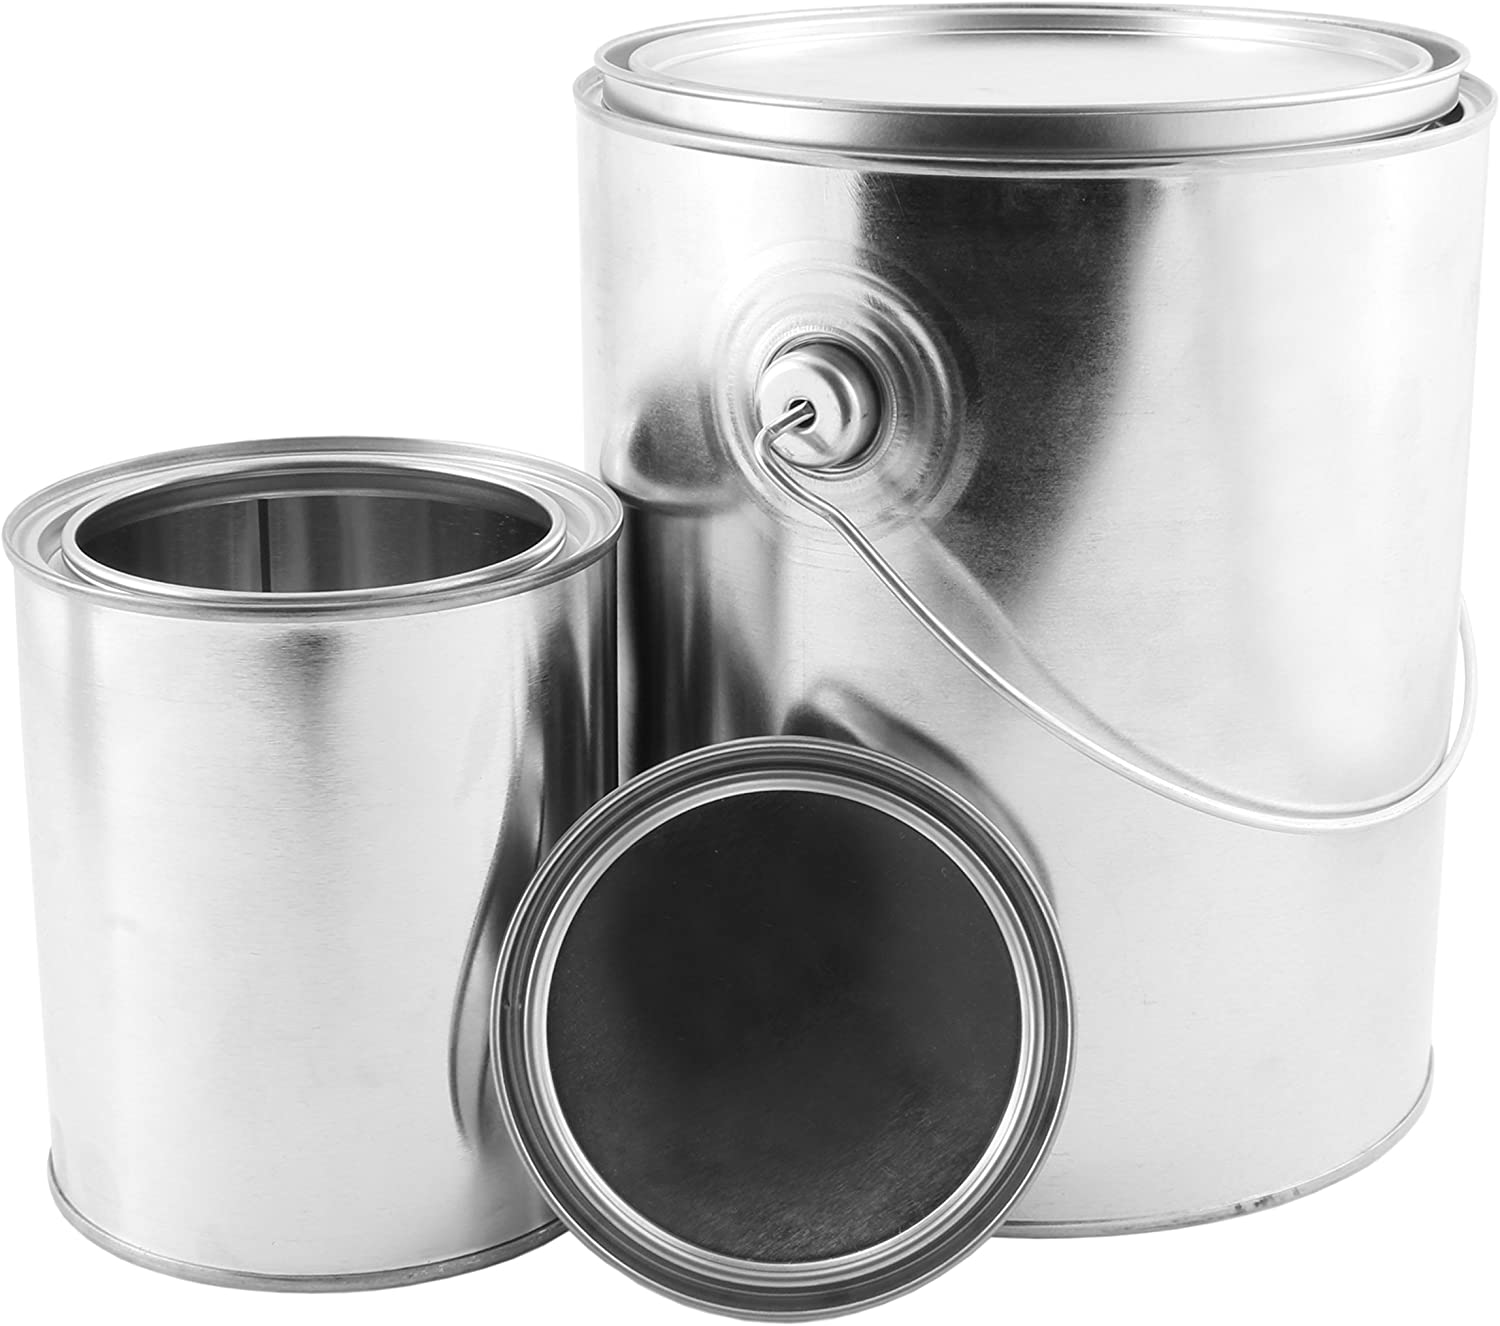 1 Gallon Empty Paint Can + 1 Quart Empty Paint Can (Combo 2-Pack); Unlined Metal Cans w/Lids